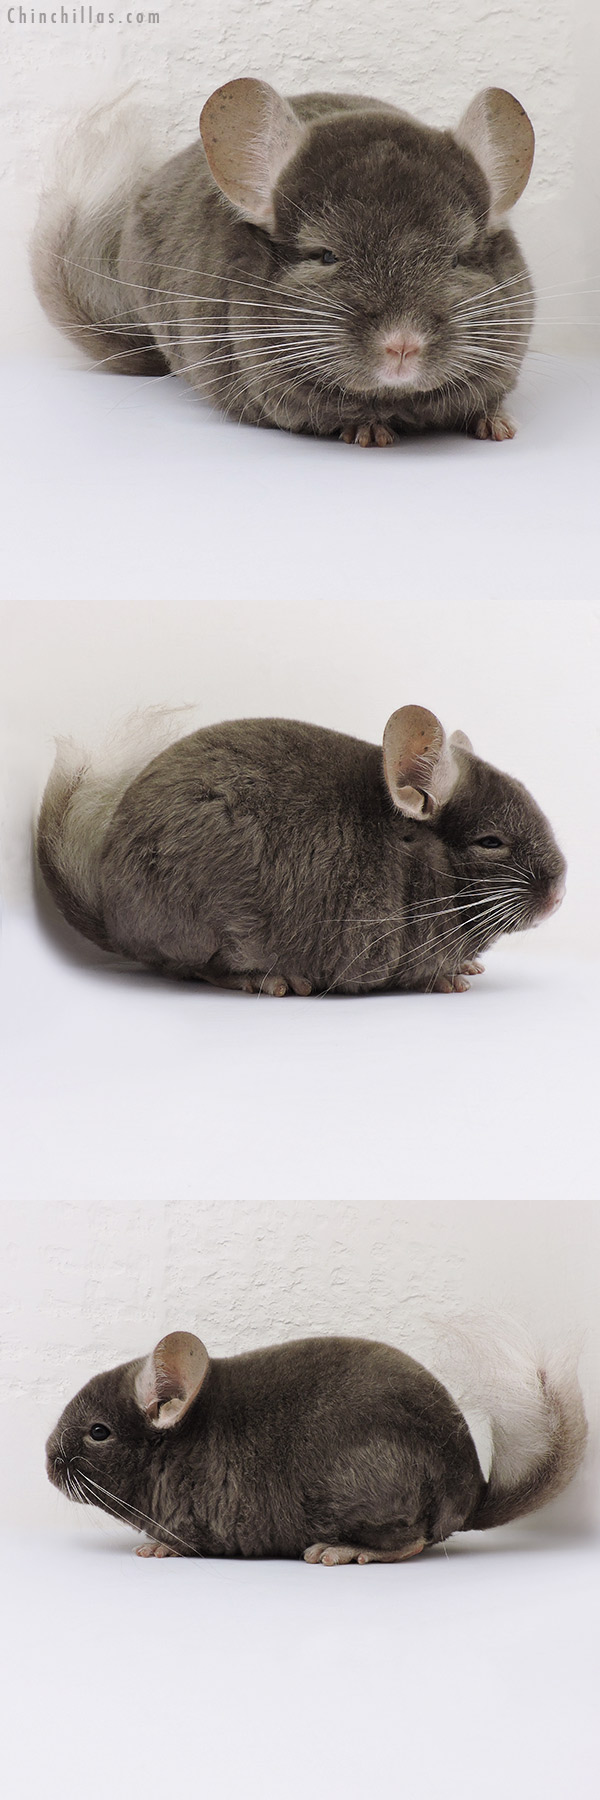 16130 Dark Tan Quasi Locken Male Chinchilla